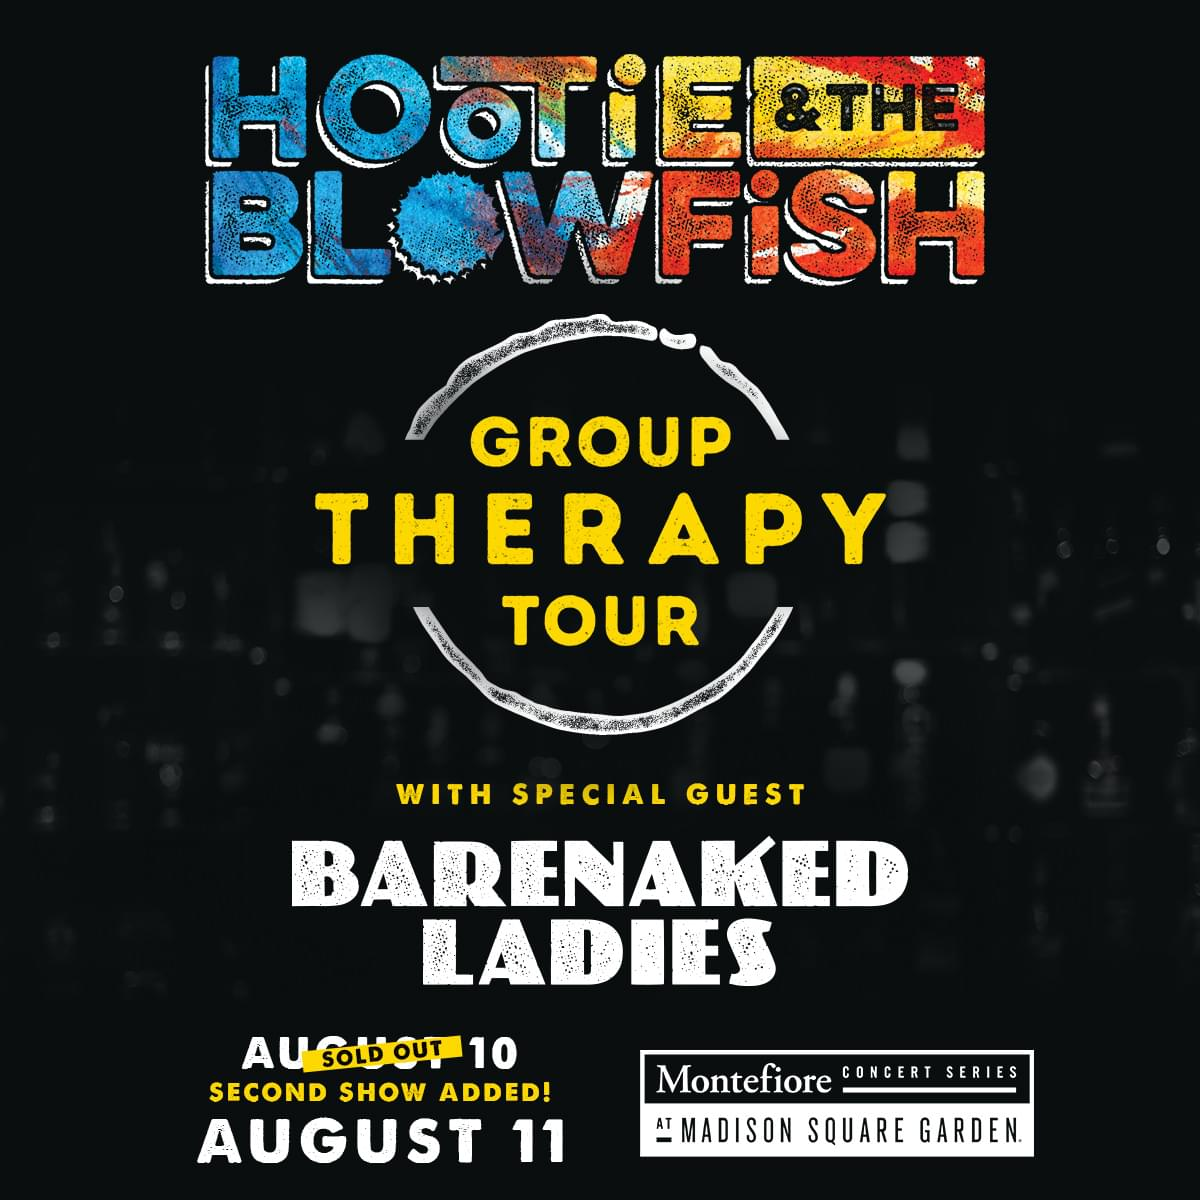 Win Tickets to See Hootie & the Blowfish!